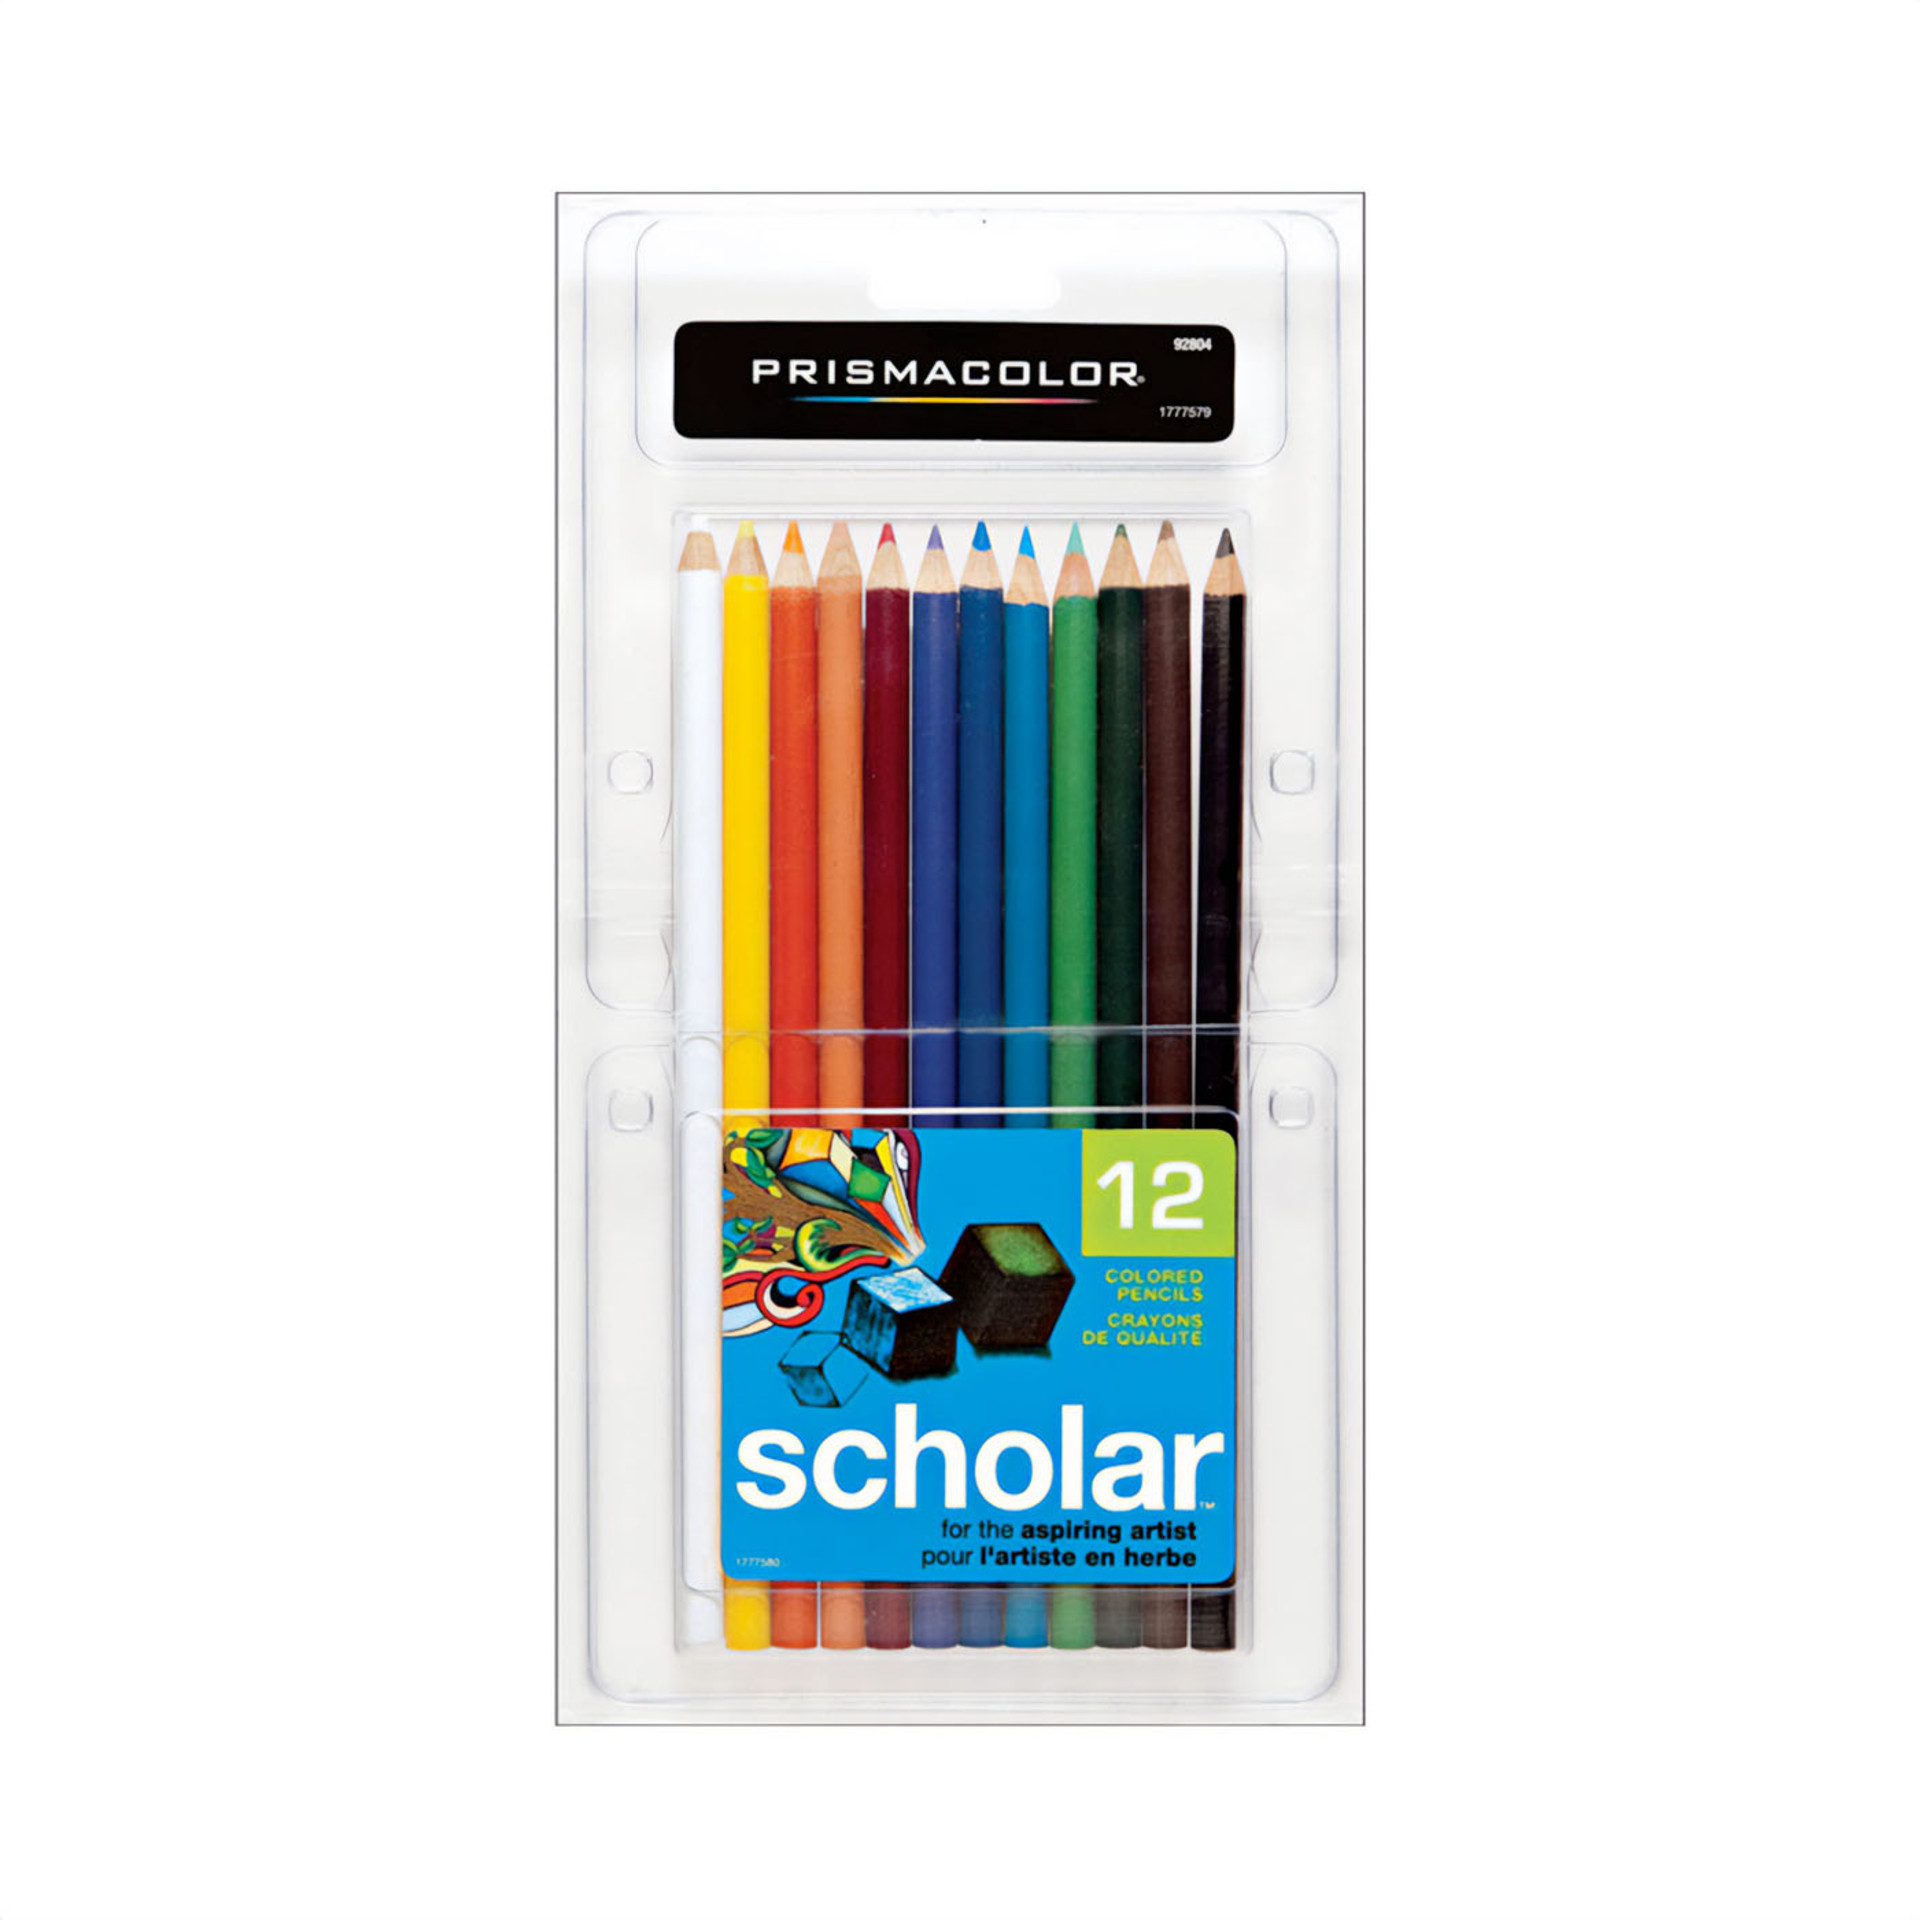 Prismacolor Scholar Colored Pencil Set 12